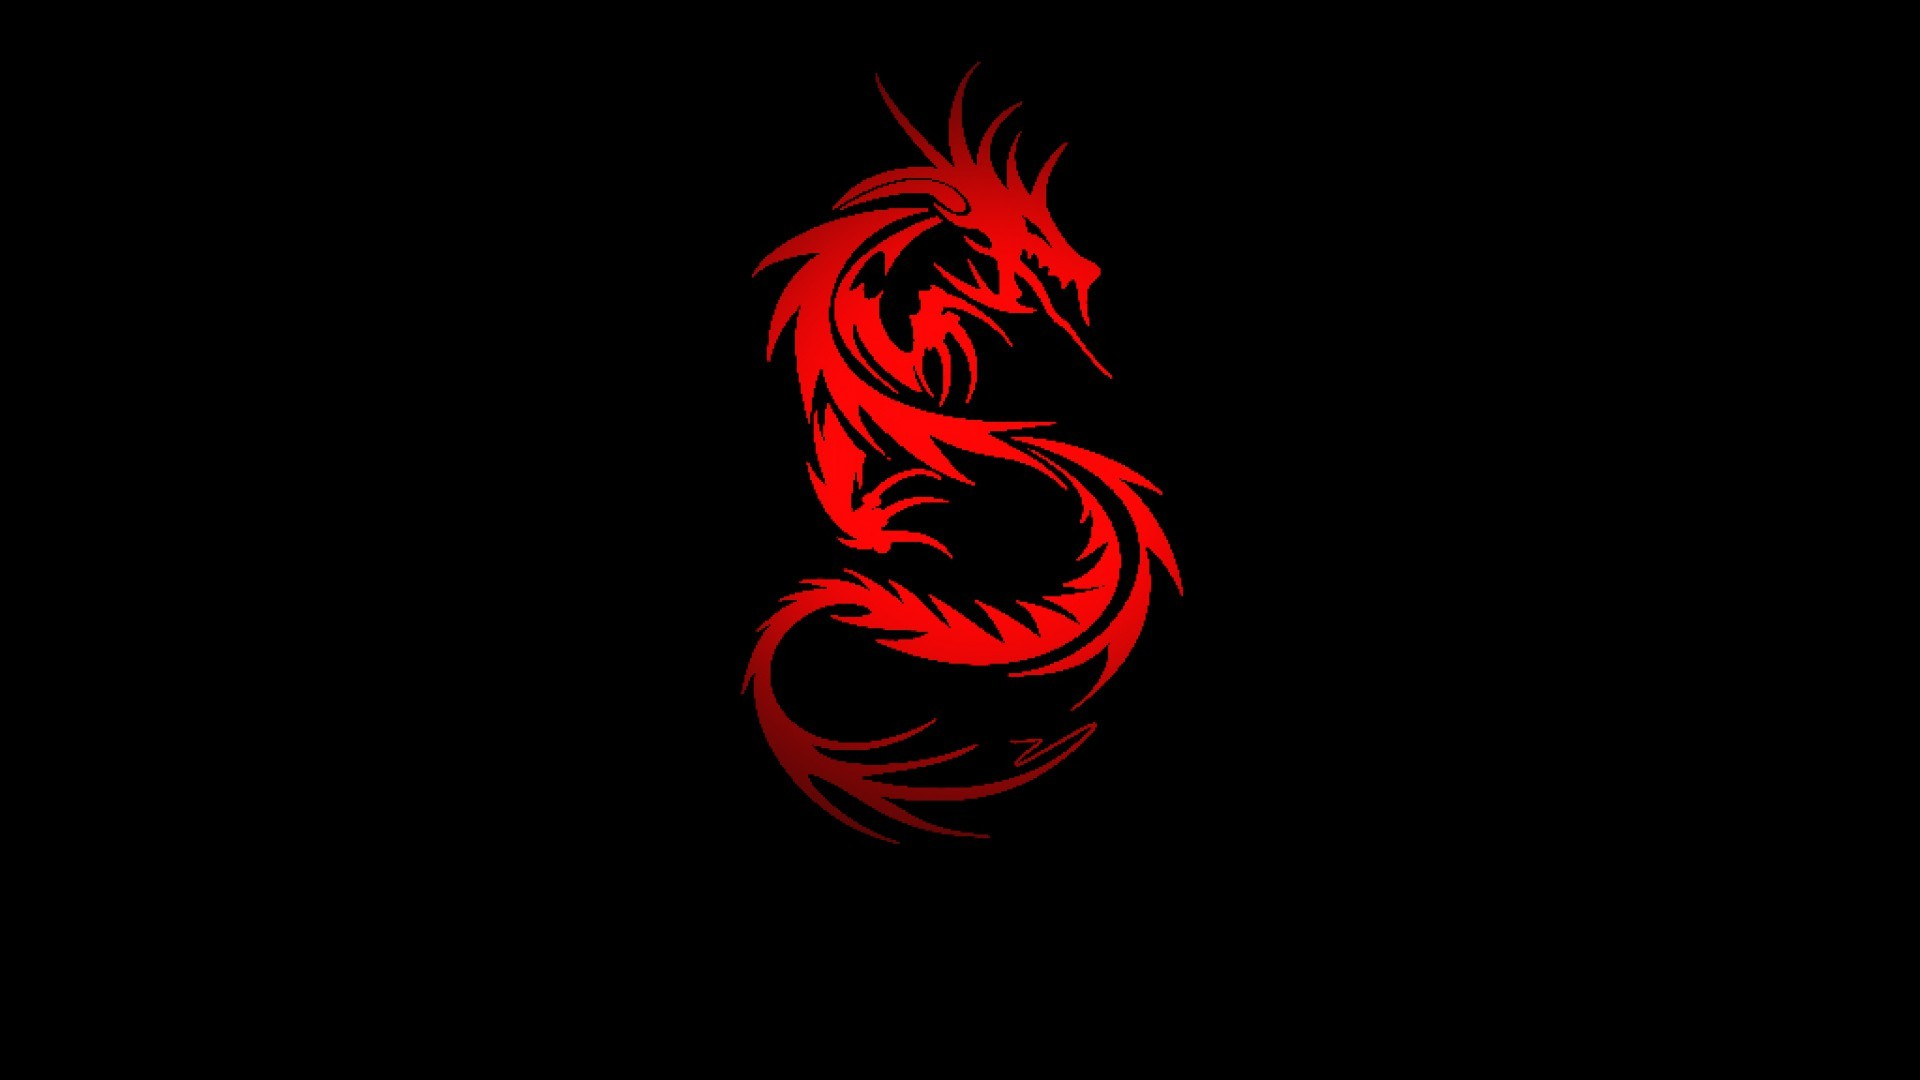 1920x1080 red dragon wallpapers hd free 562608